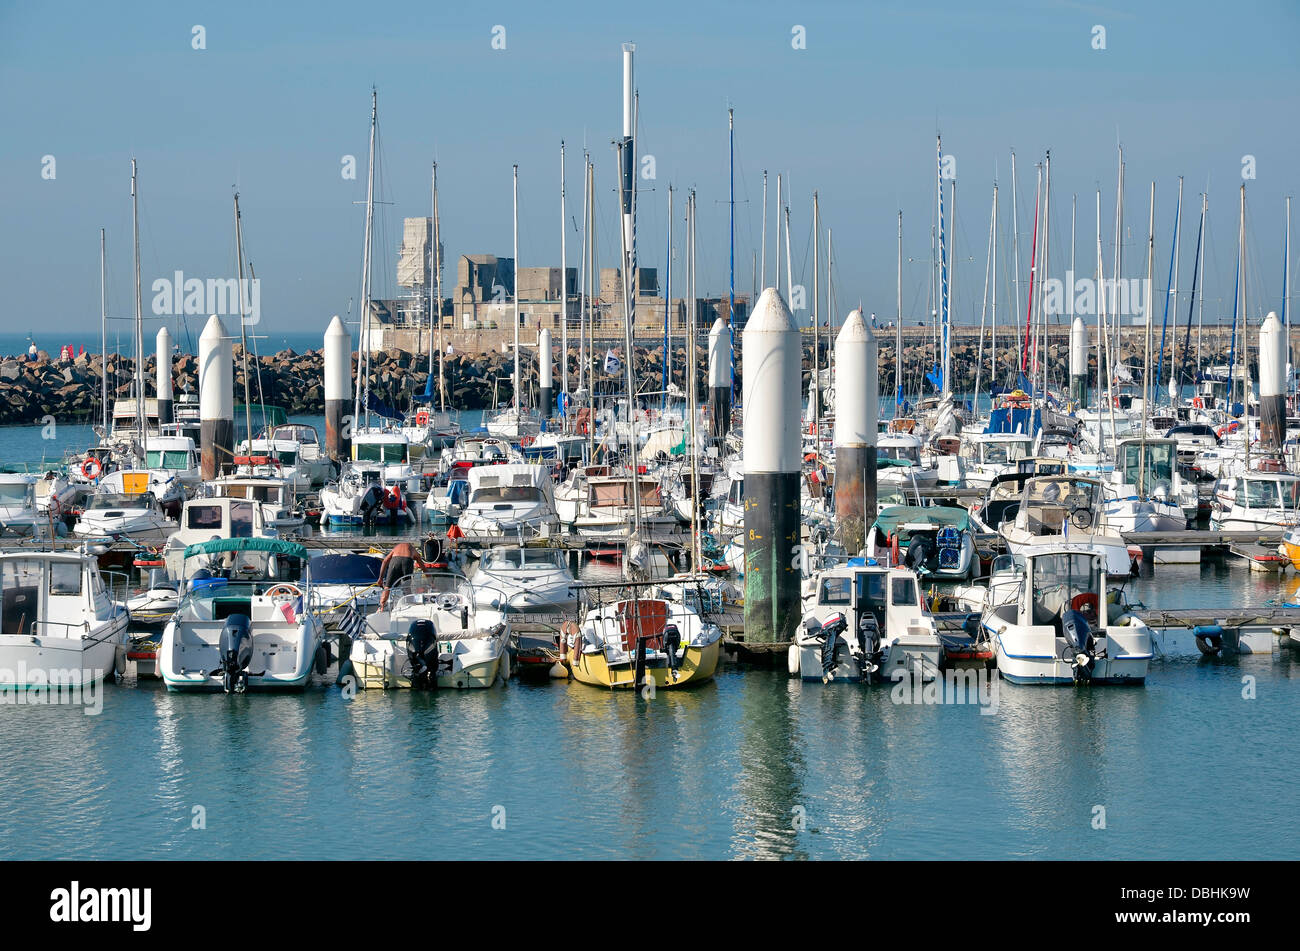 Port of Le Havre, commune in the Seine-Maritime department in the Haute-Normandie region in northwestern France - Stock Image